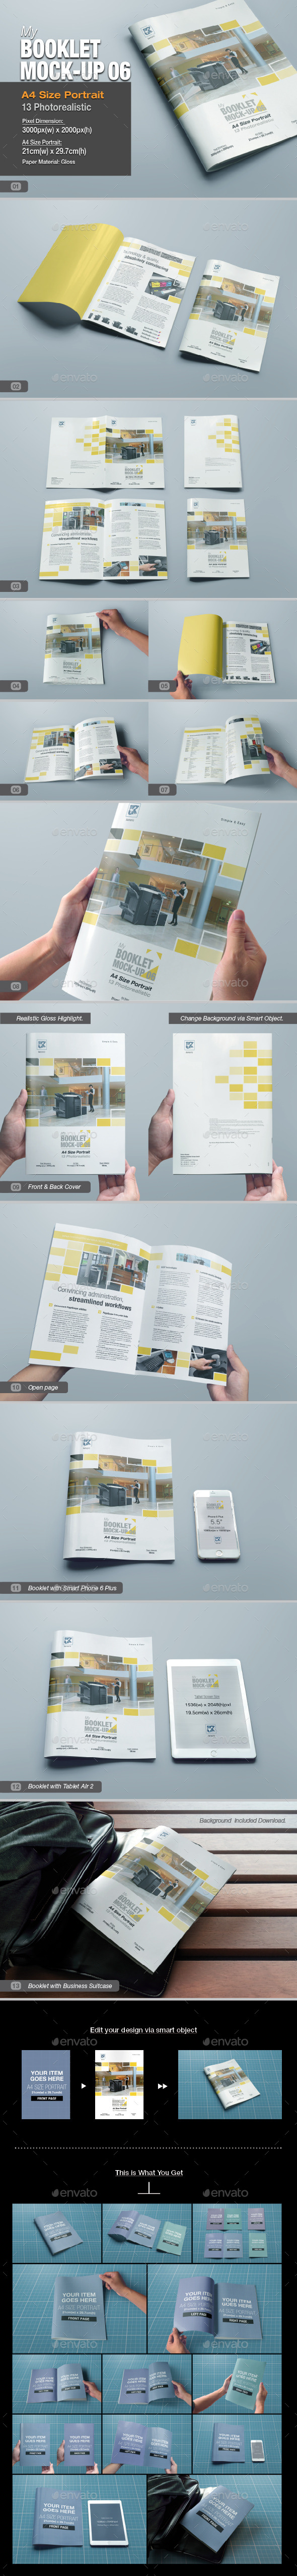 GraphicRiver myBooklet Mock-up 06 10735972